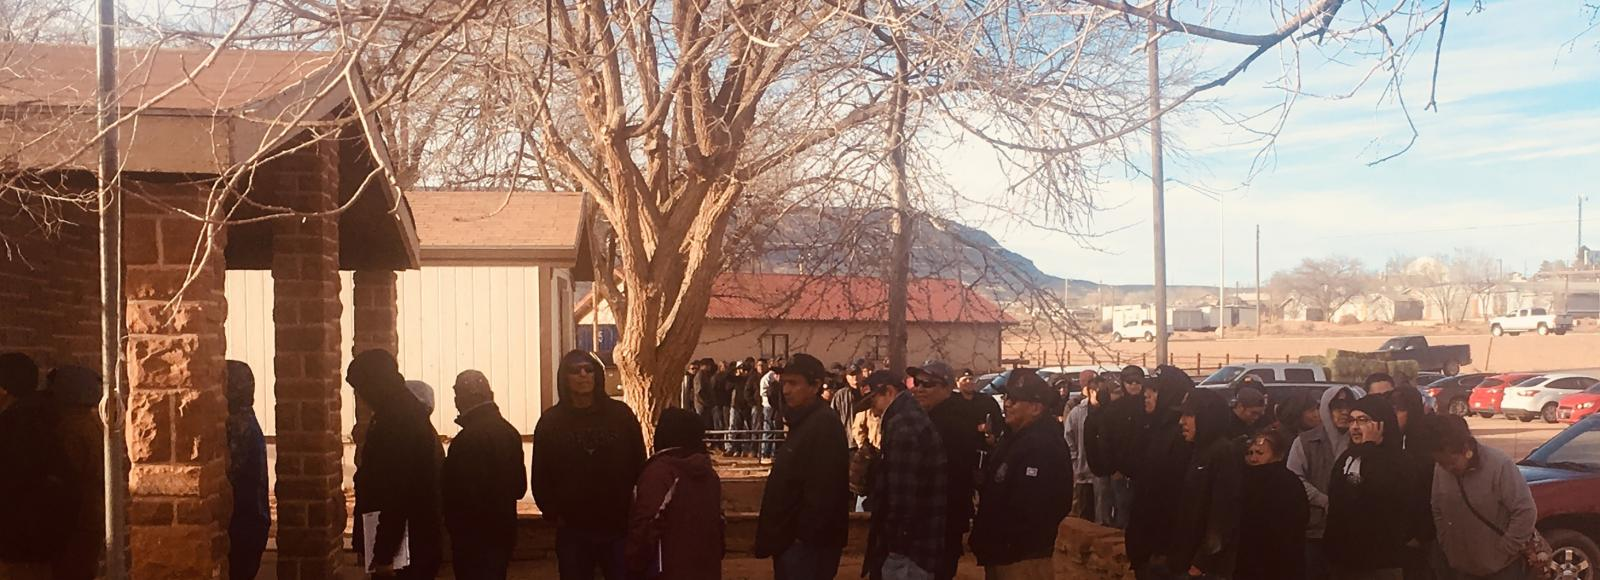 A long queue of adults, mostly men, extends from a small building into a parking lot. Many are wearing hoodies, jackets, and beanies or caps. The line wraps around a large leafless tree.